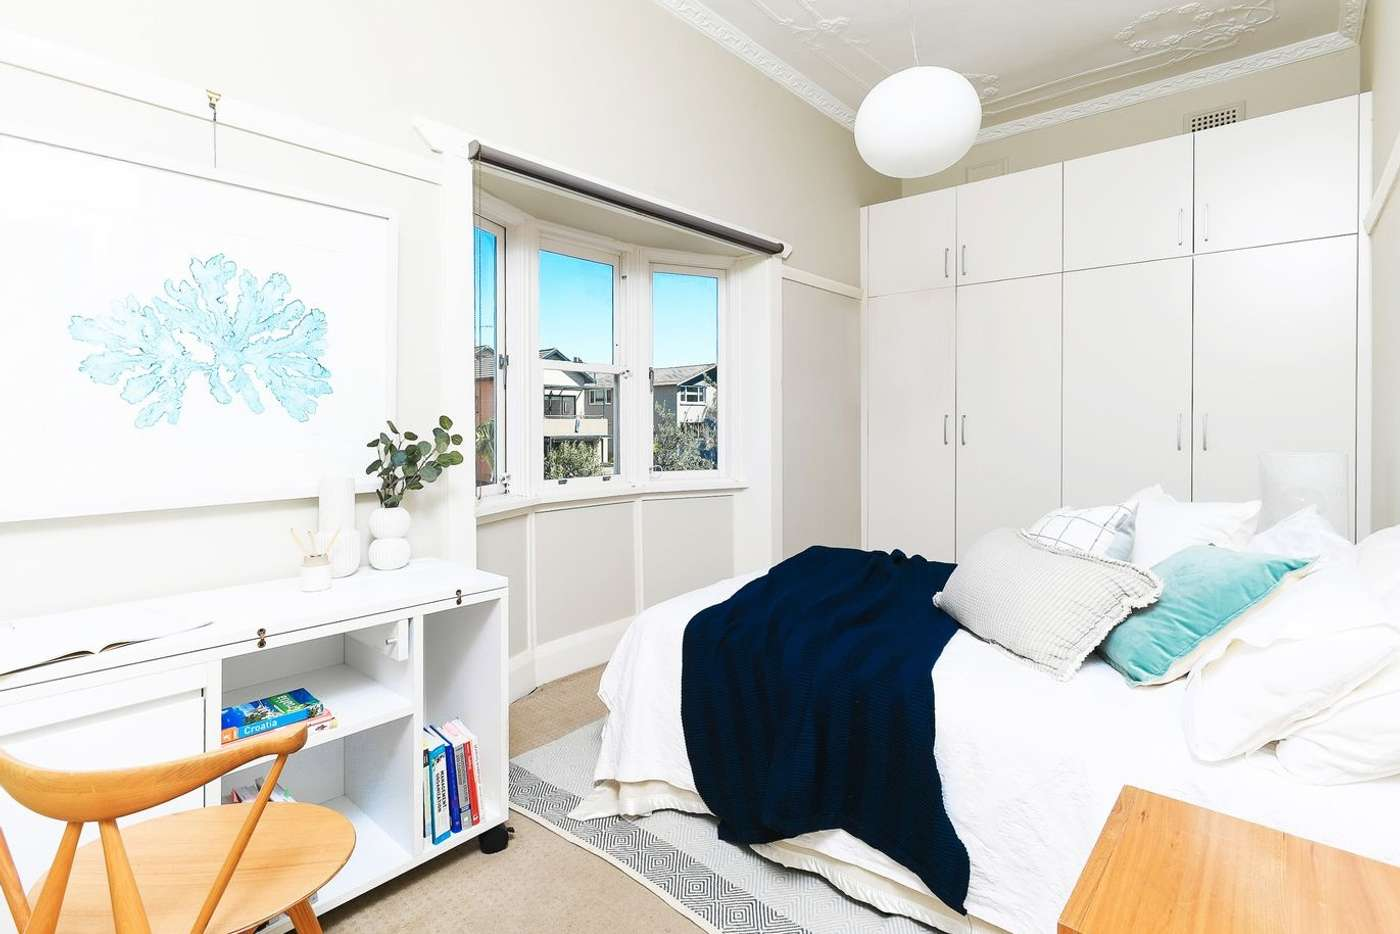 Sixth view of Homely apartment listing, 3/21 Beach Road, Bondi Beach NSW 2026